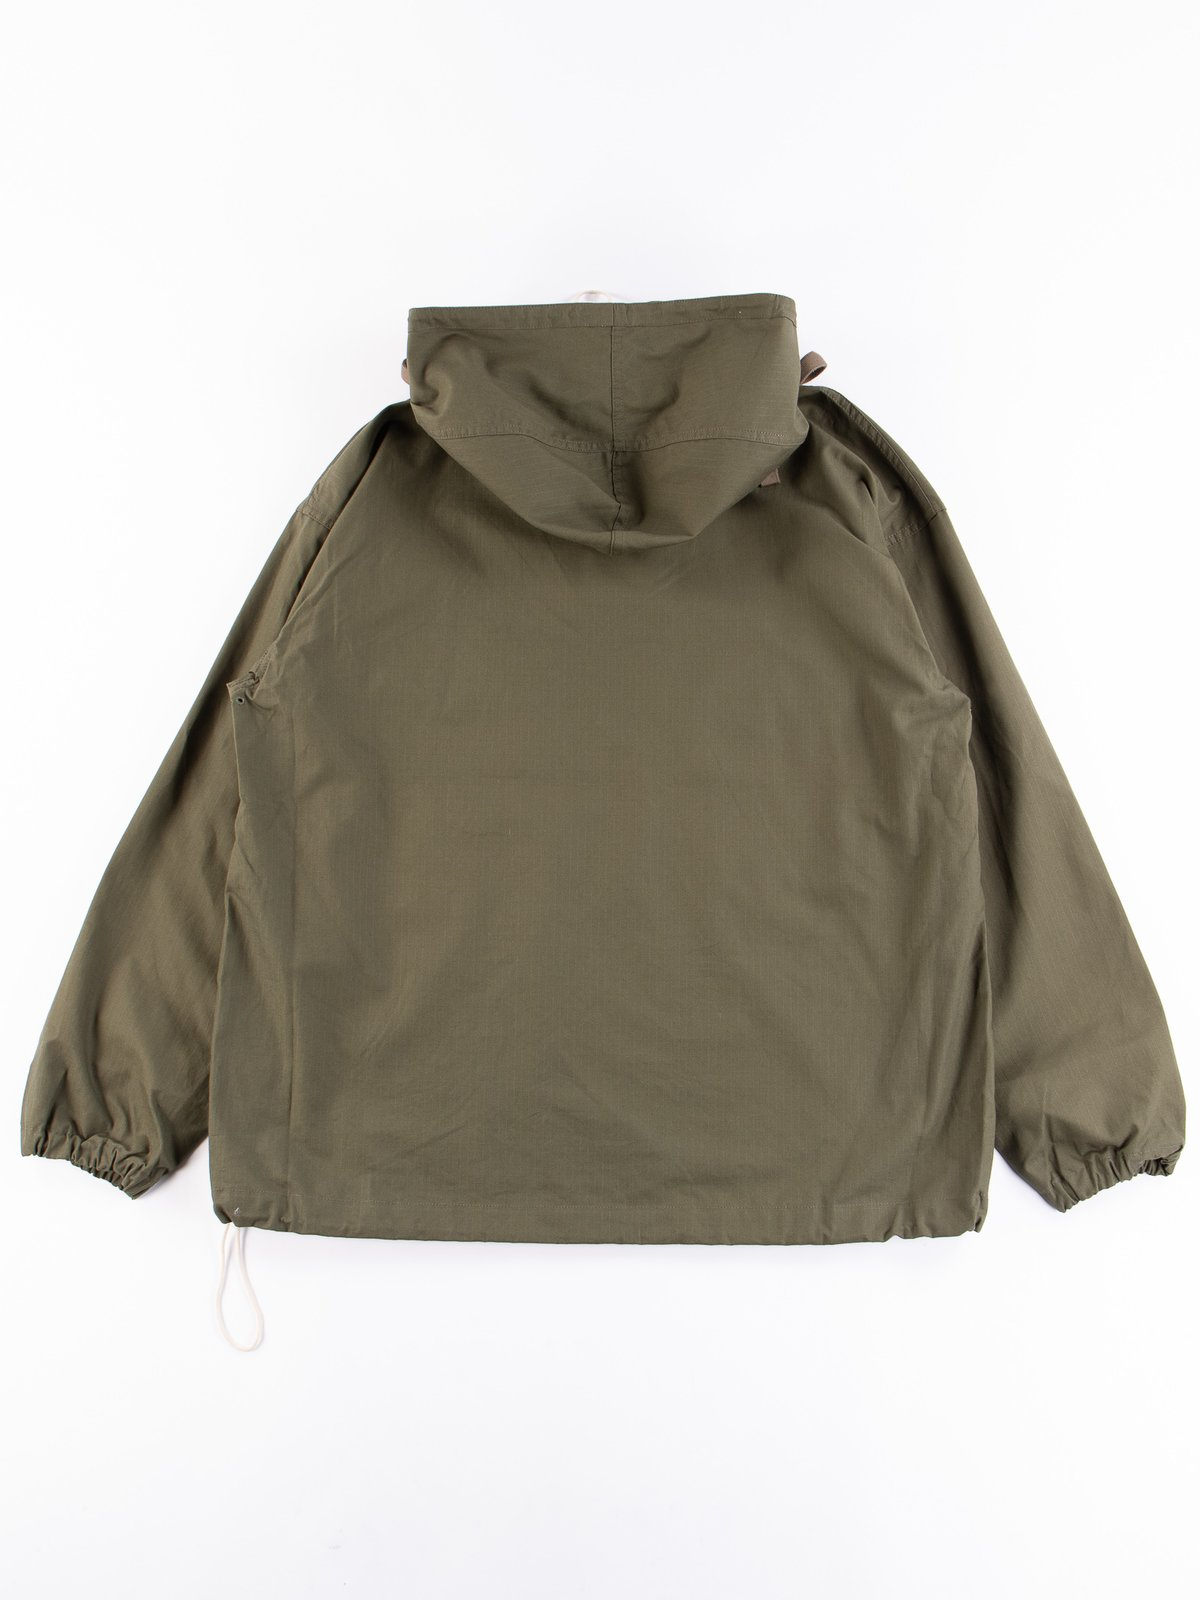 Olive Army Ripstop Salvage Parka - Image 6